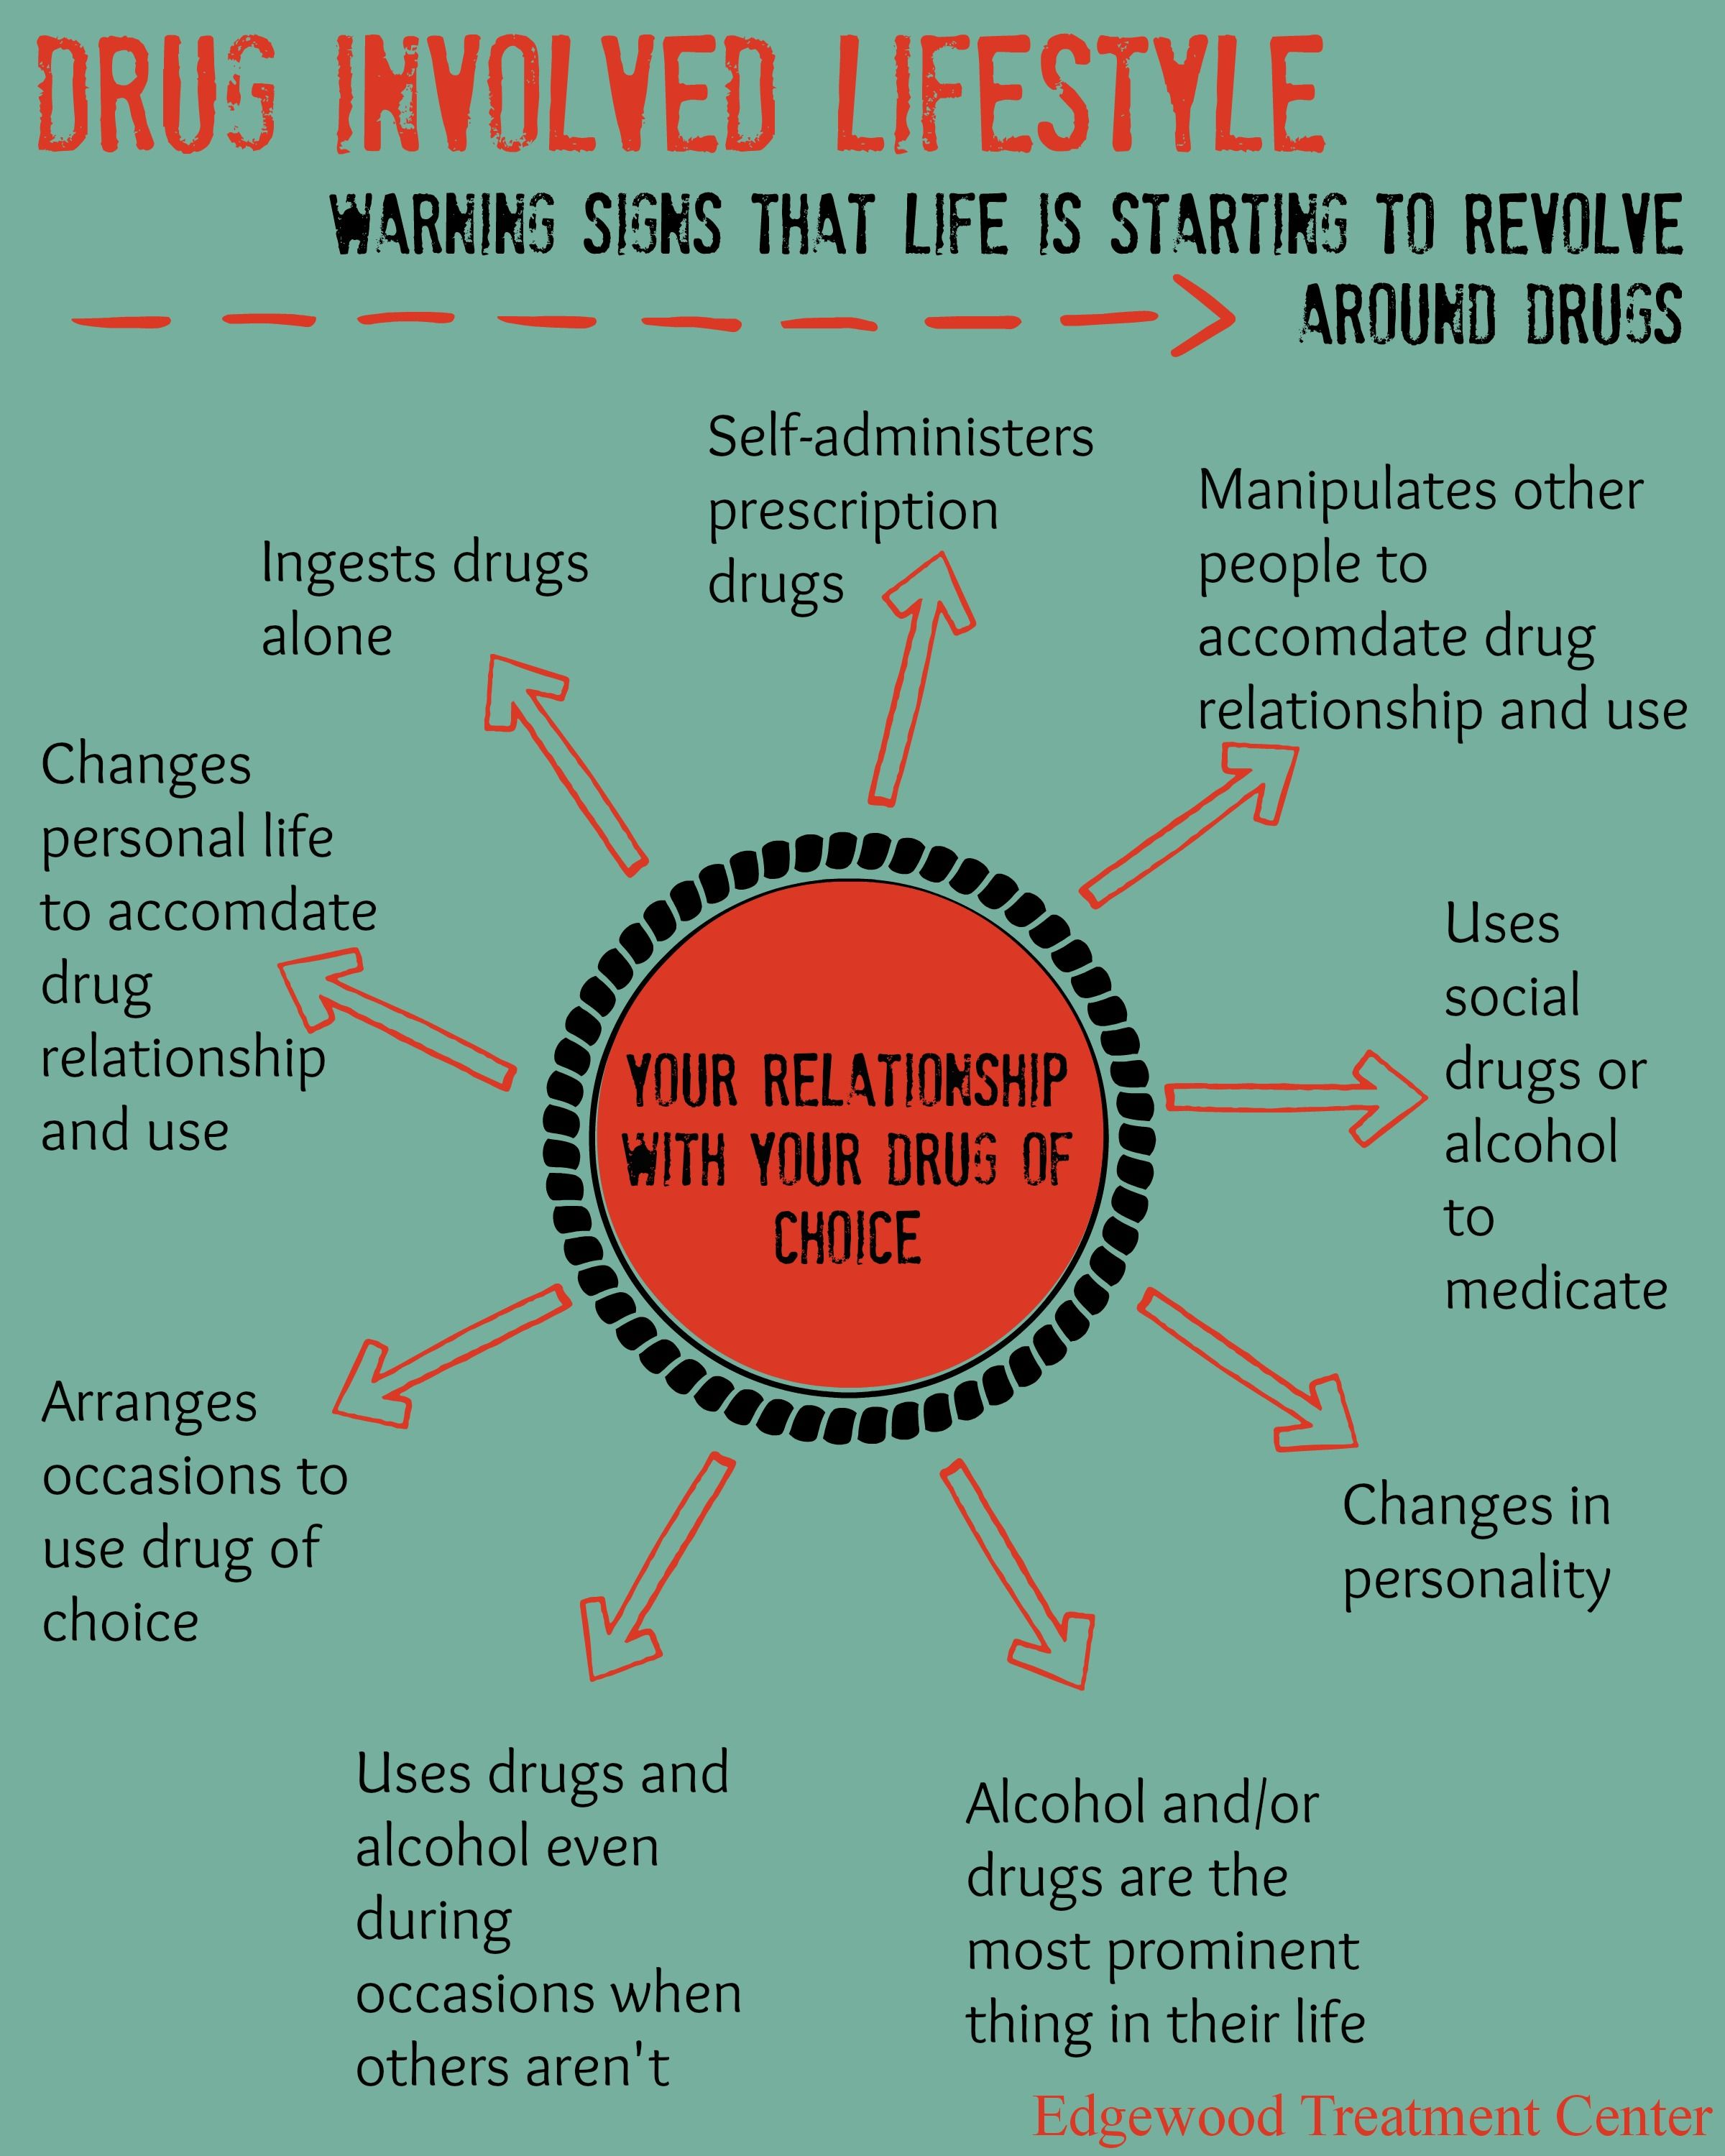 dating a drug addict in recovery Janie lacy, lmhc, ncc, csat - people who have overcome sex addiction already know the hard work required to maintain a healthy relationship they generally have boundaries in place to help safeguard their relationships and have created their own support network to help maintain their recovery.